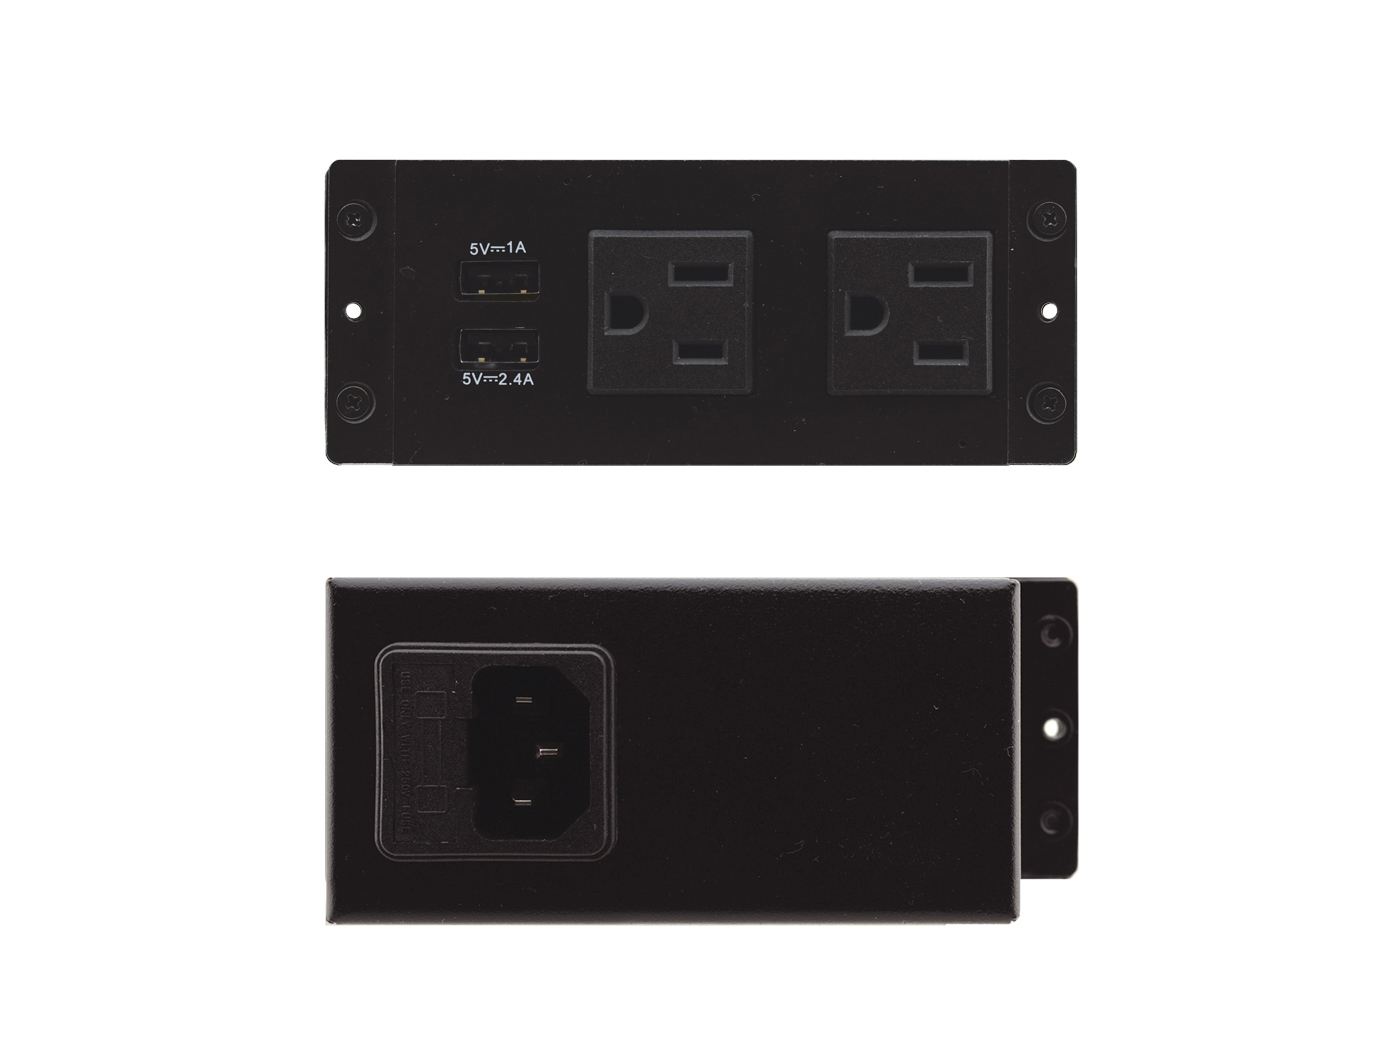 TS-2UC TBUS Dual socket module with 2 US AC power sockets and 2 USB charging ports by Kramer